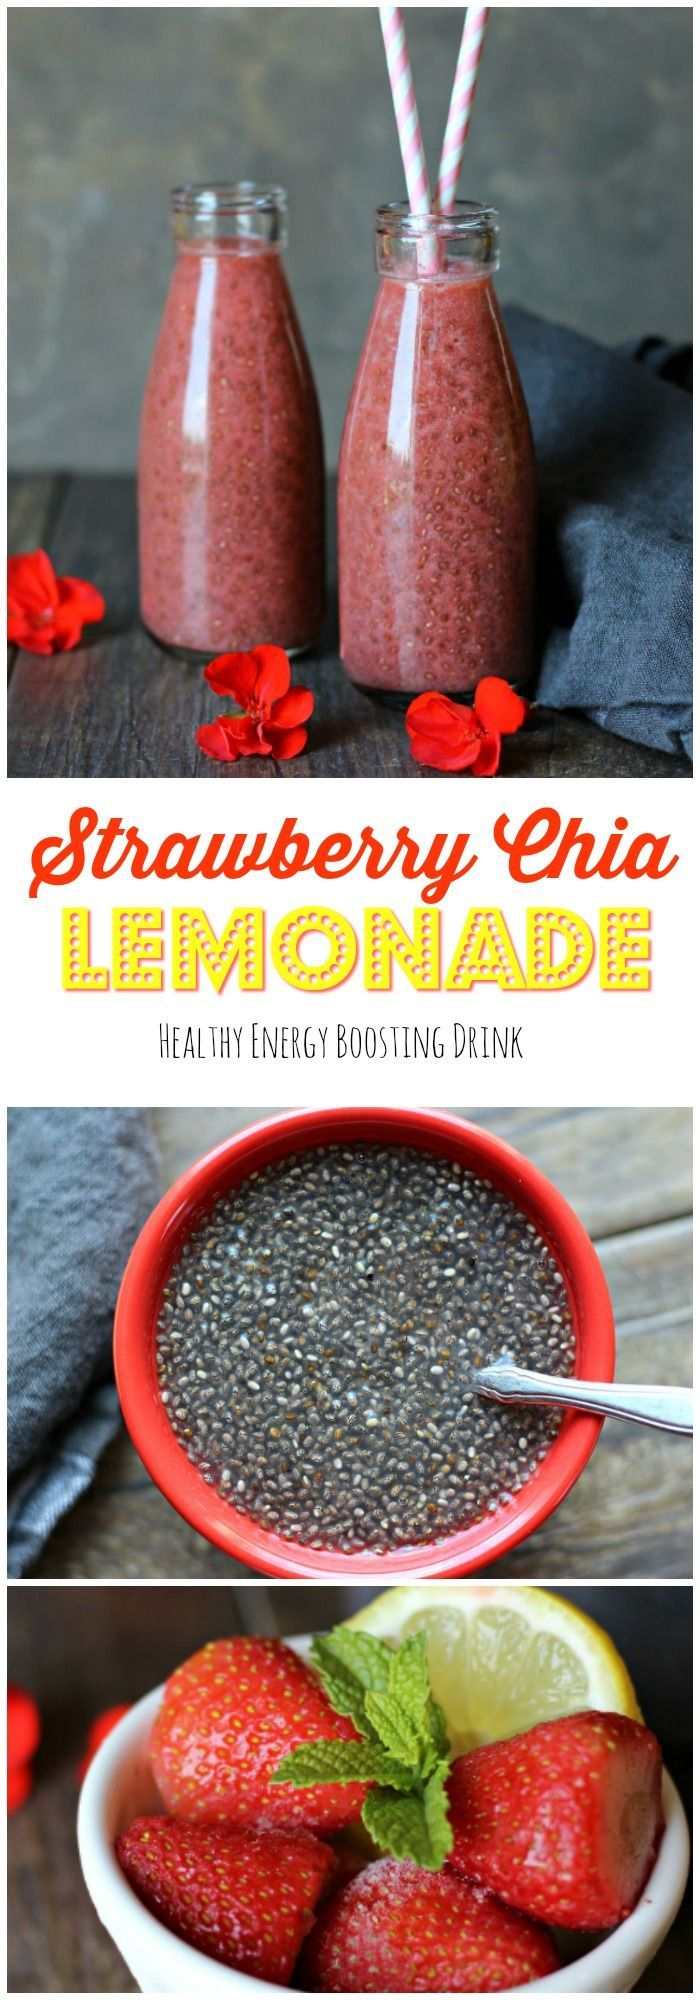 This invigorating Strawberry Chia Lemonade is a delicious healthy and energy boosting drink. A must try! gardeninthekitche...